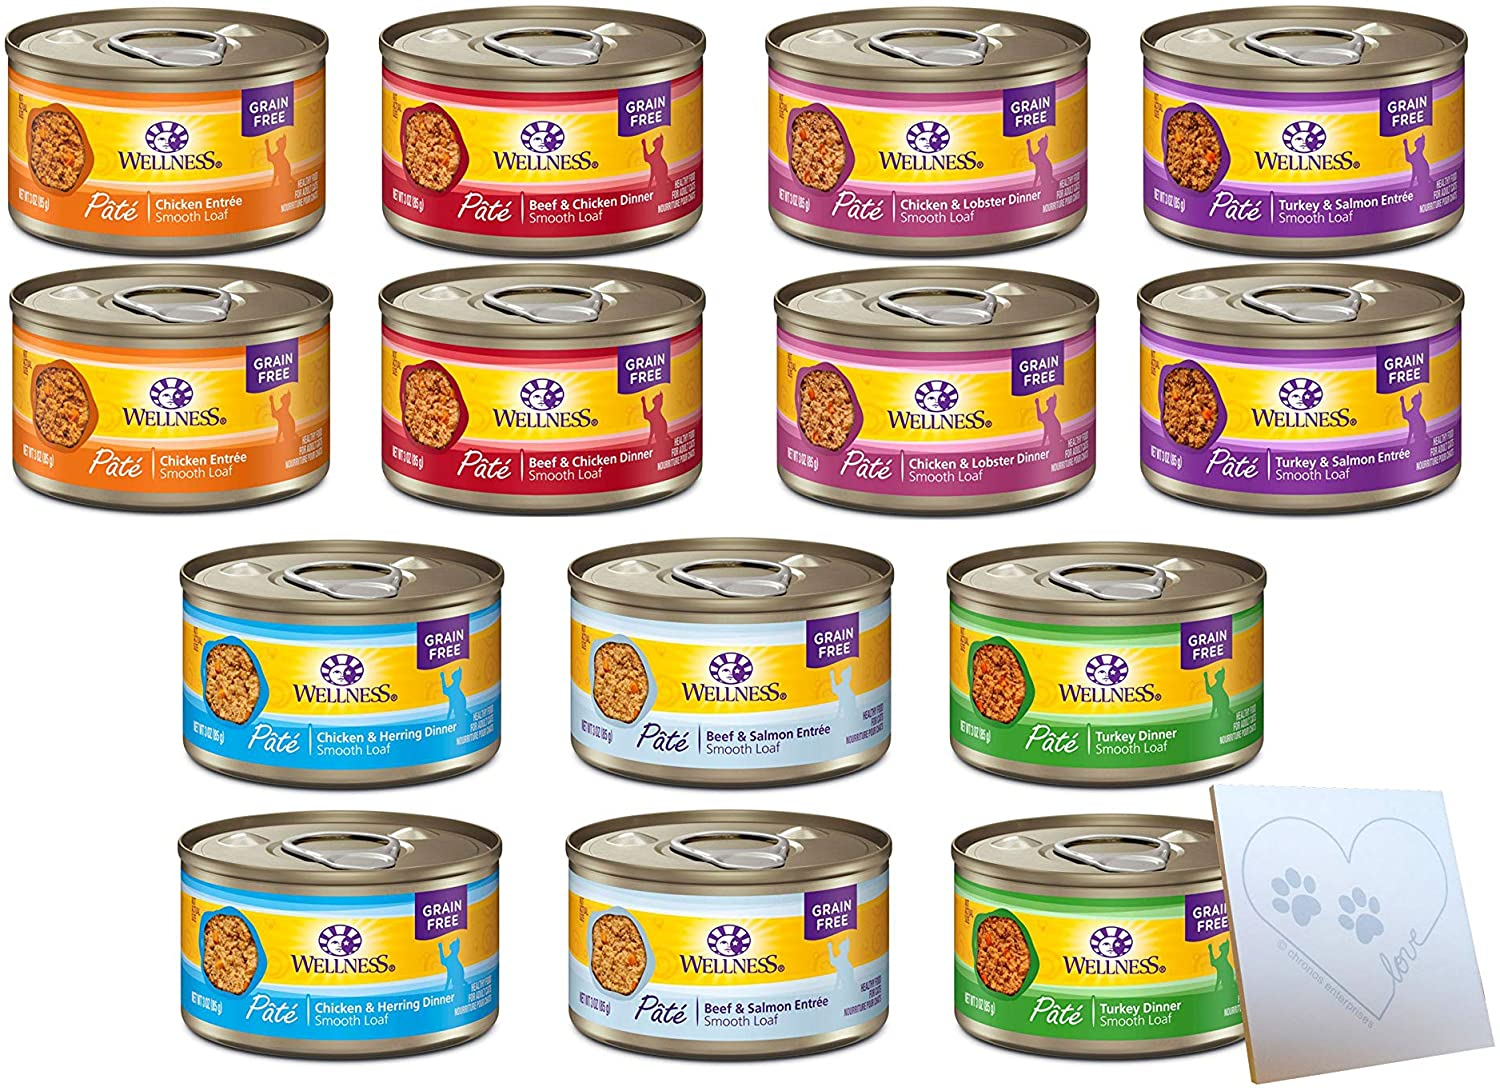 Wellness Grain-Free Huge Variety Pack - All 7 Flavors: Turkey & Salmon, Beef, Turkey, Chicken & Lobster, Chicken & Herring, Chicken, and Beef & Salmon Plus Pet Paws Notepad (3oz Each, 14 Total Cans)